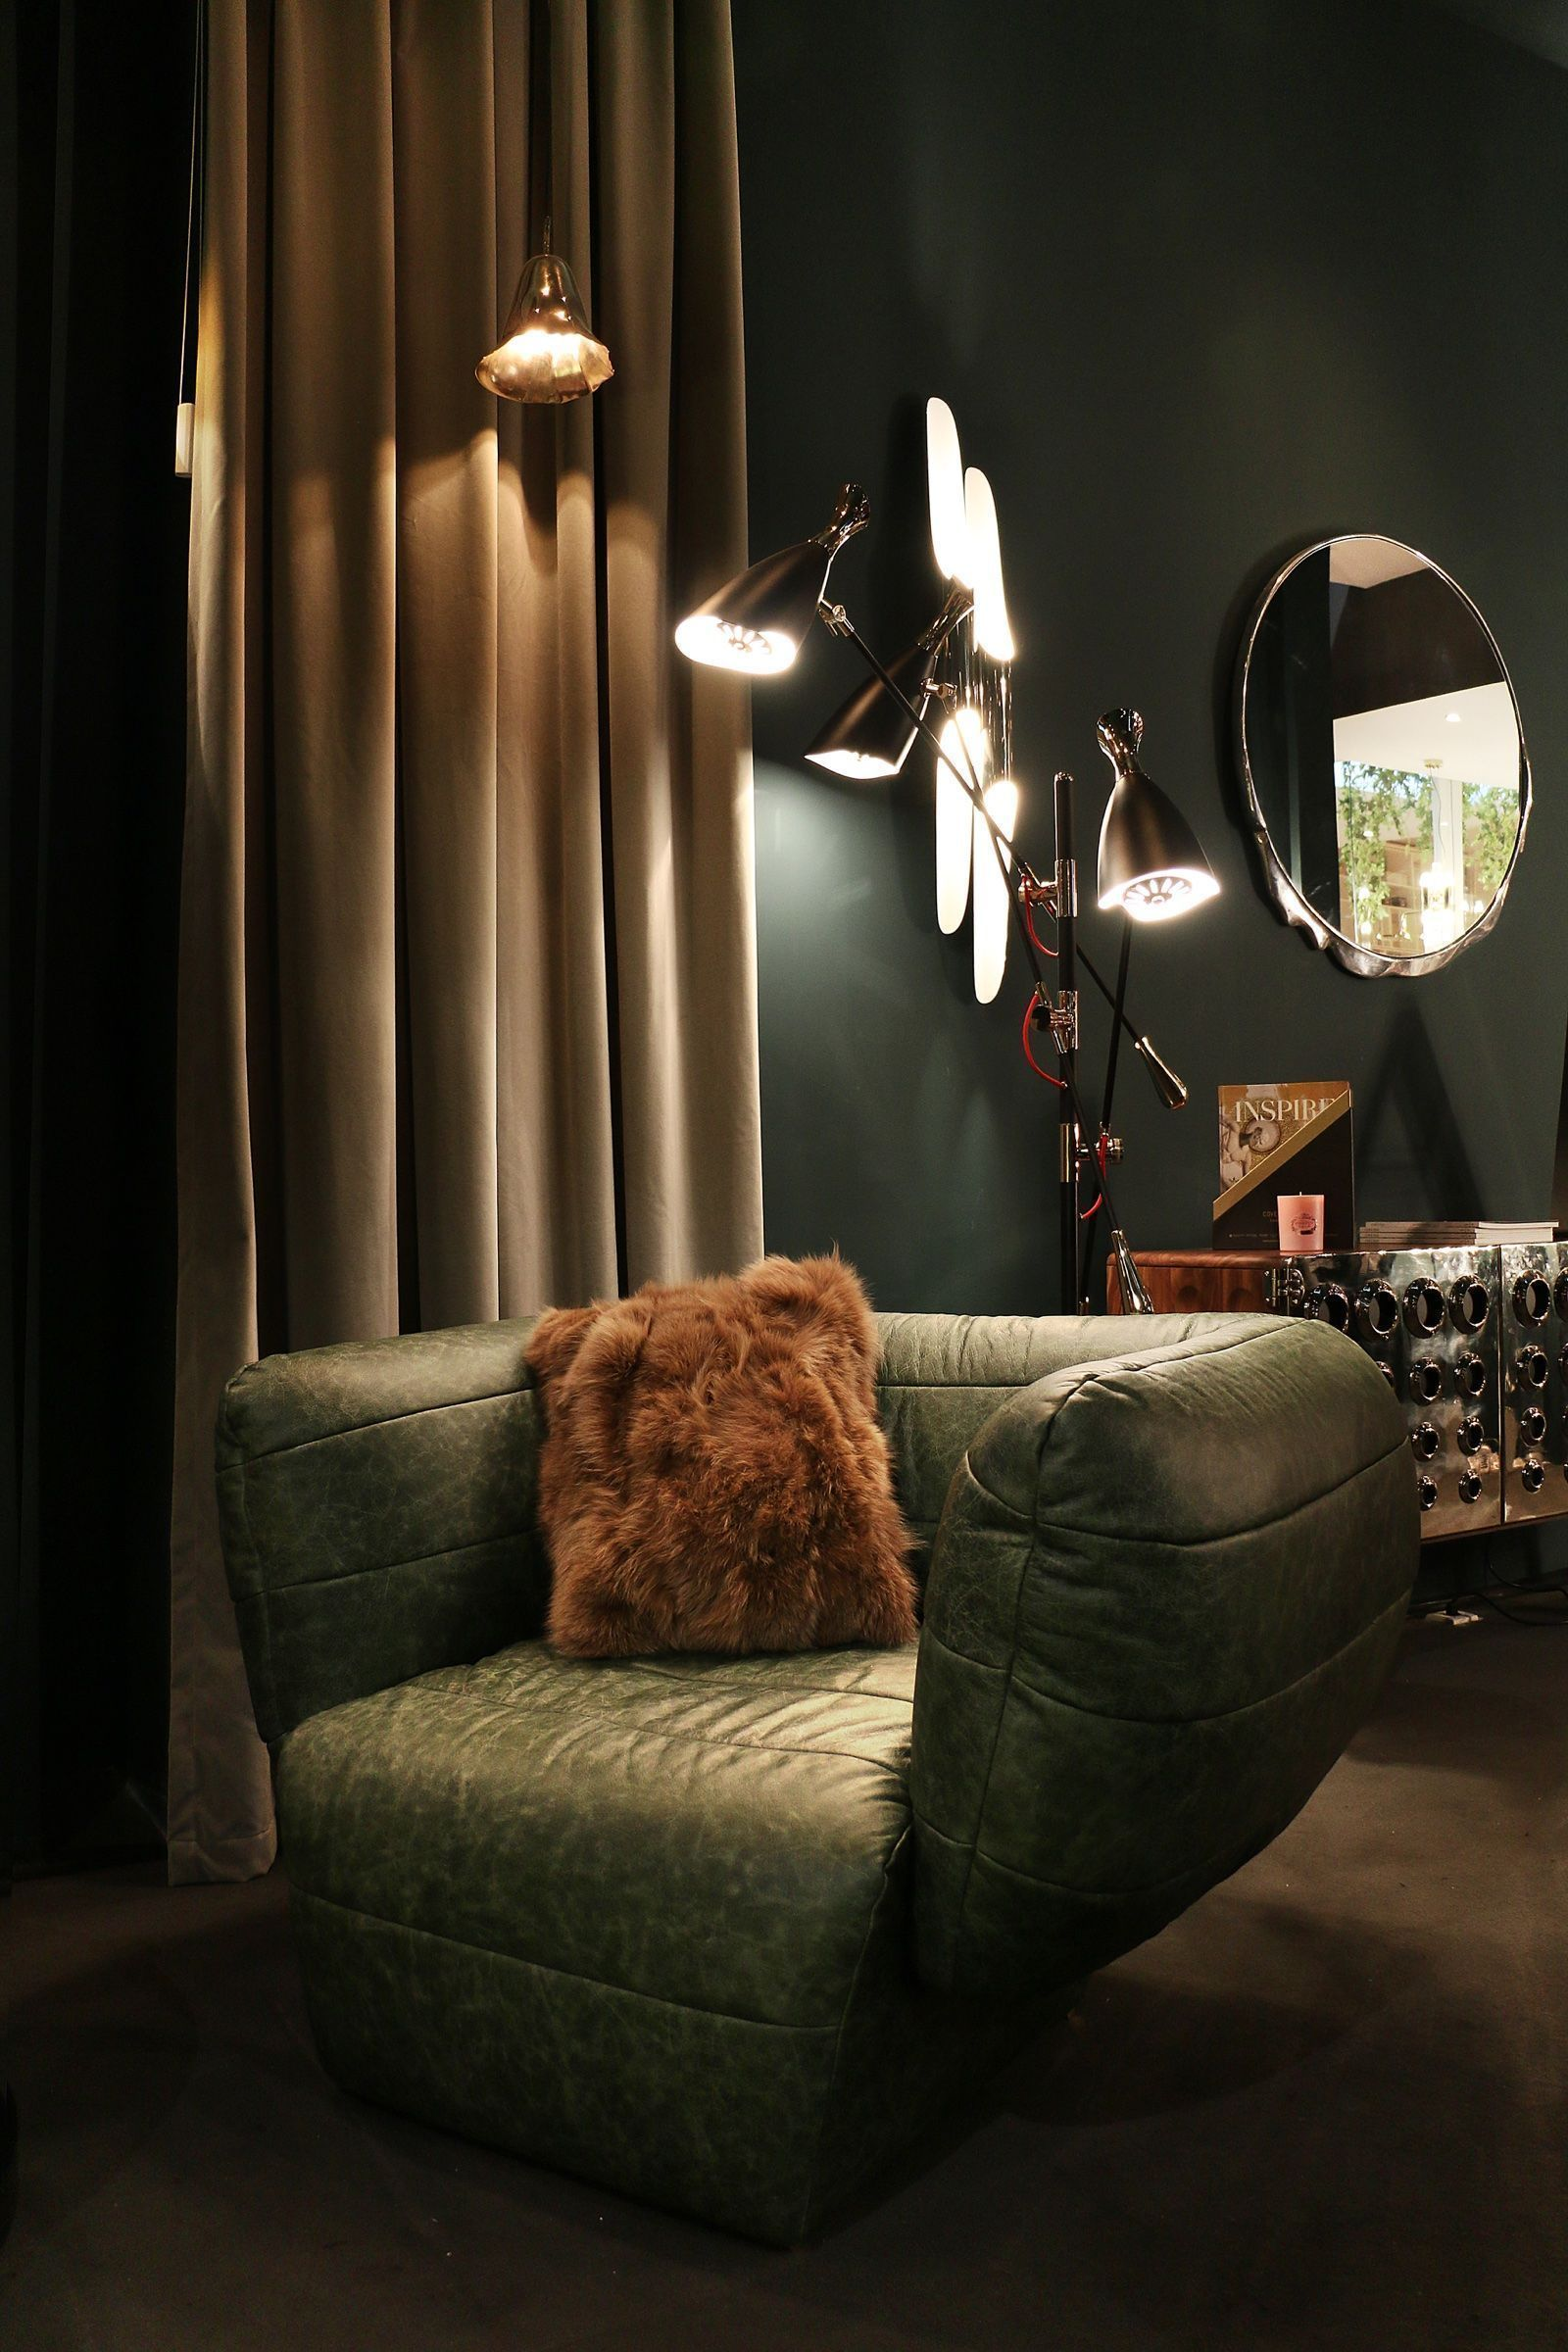 Elevate Your Interior With Mid Century Modern Furniture And Lighting They